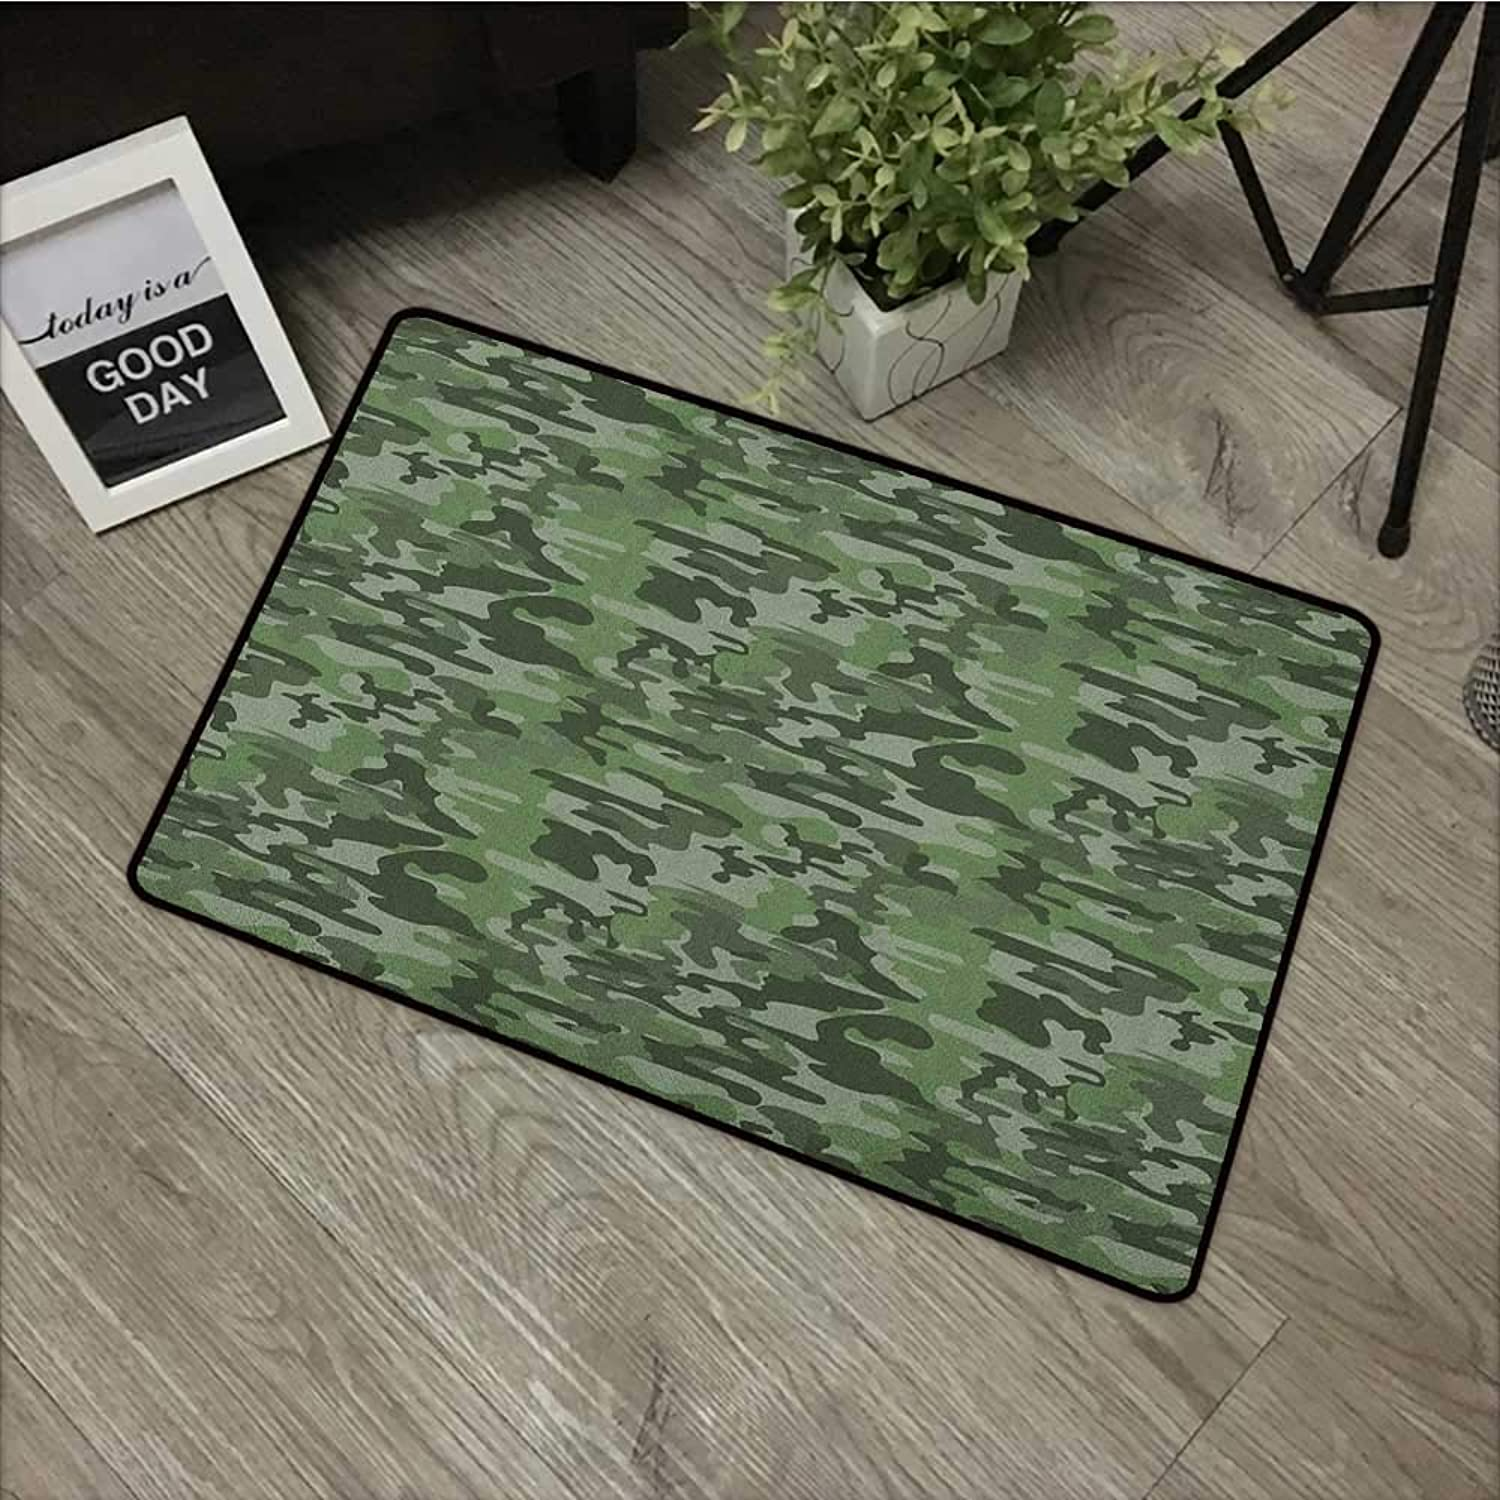 Bathroom Door mat W35 x L59 INCH Forest Green,Abstract Pattern in Green Shades Camouflage Classical Uniform Illustration, Multicolor Easy to Clean, Easy to fold,Non-Slip Door Mat Carpet